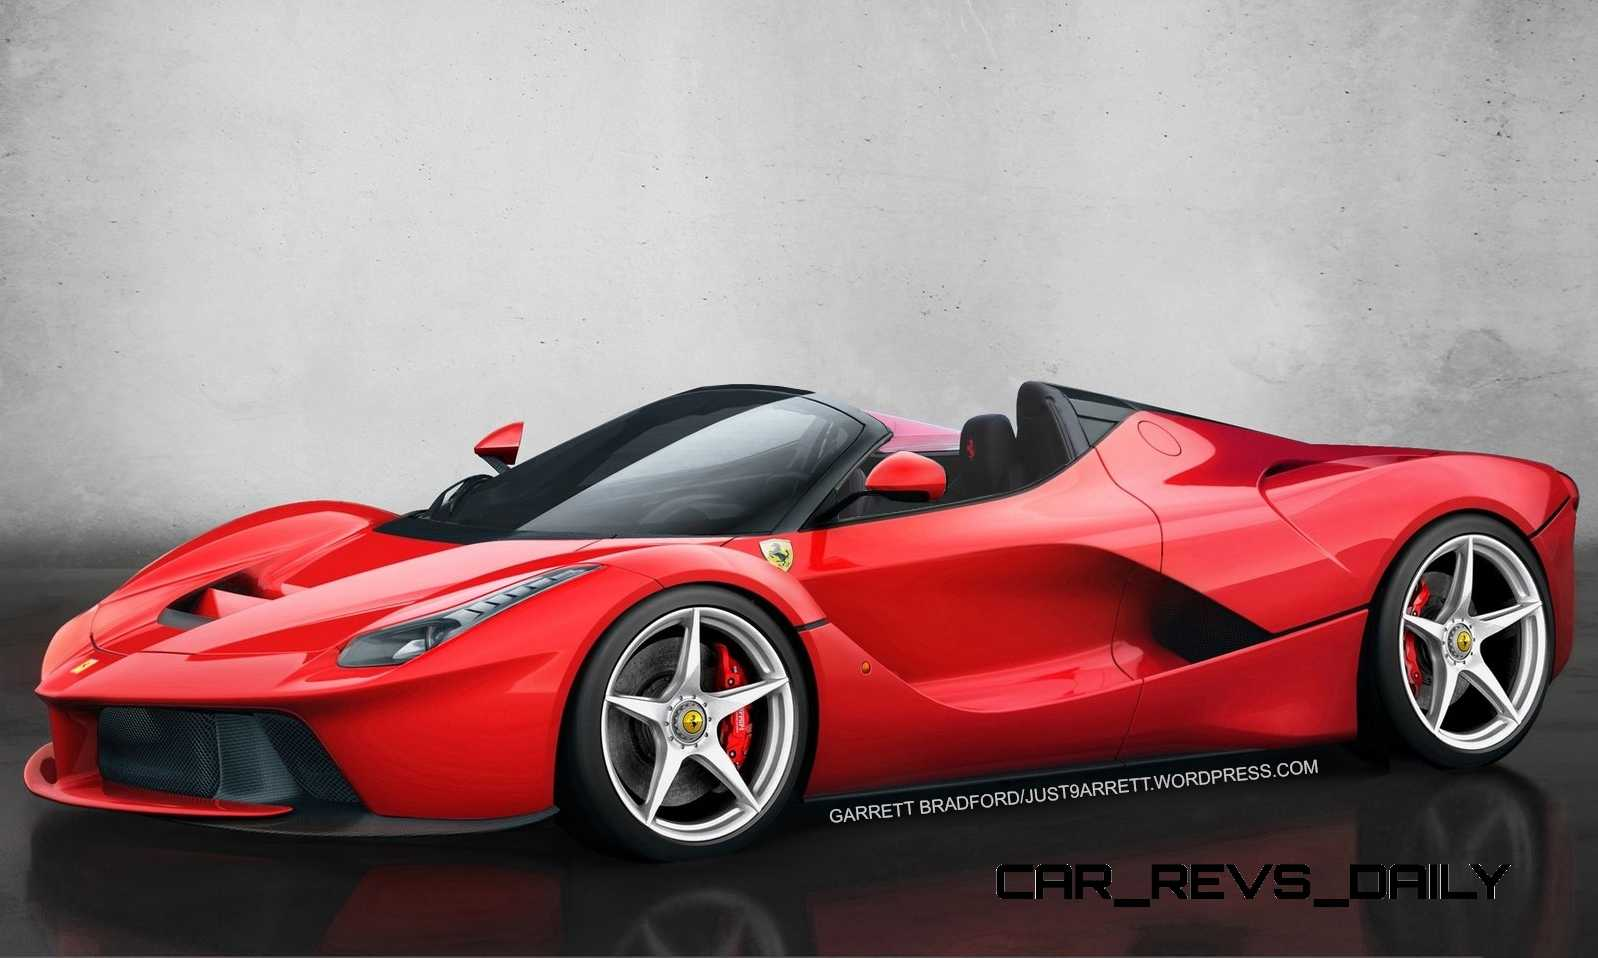 LaFerrari Roadster vs McLaren P1 Spider 6